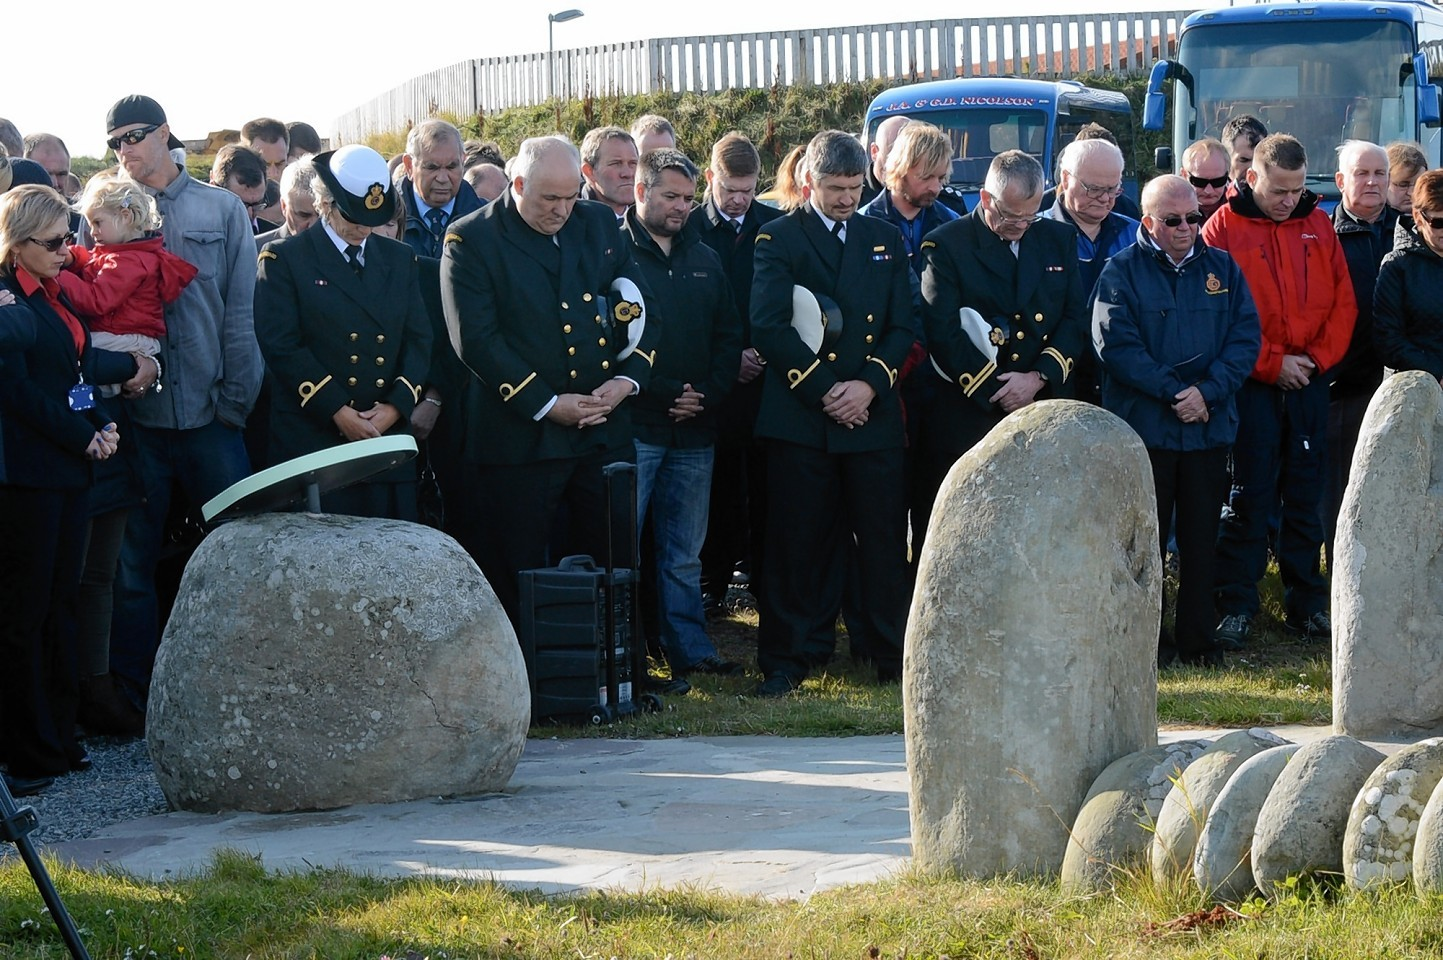 Sumburgh helicopter memorial service